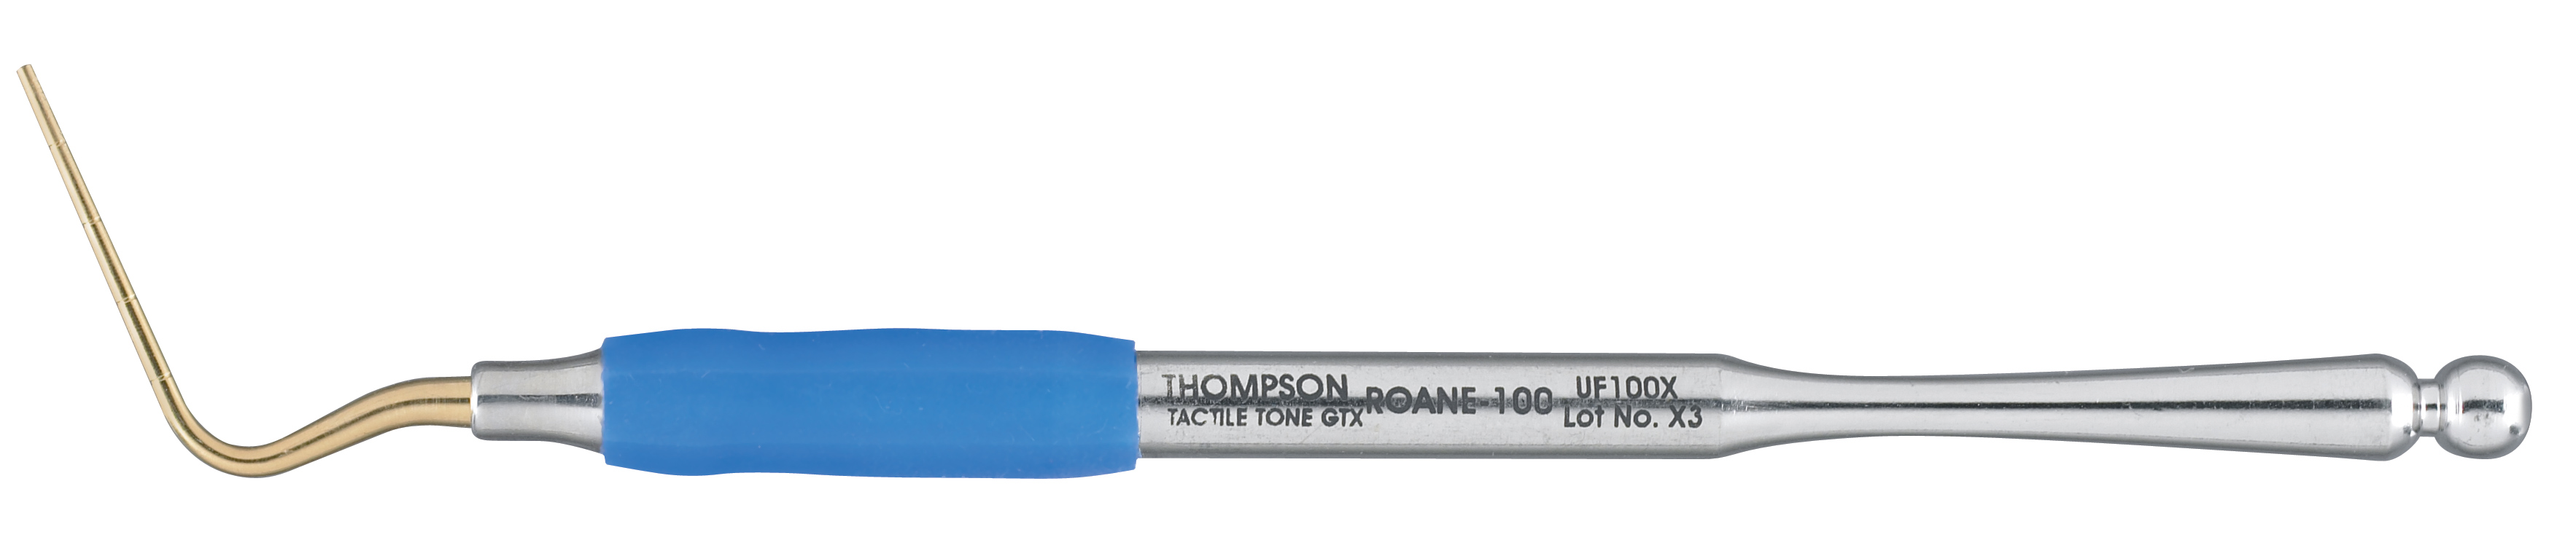 roane-condenser-100-tactile-tone-single-end-gtx-blue-uf100x-miltex.jpg